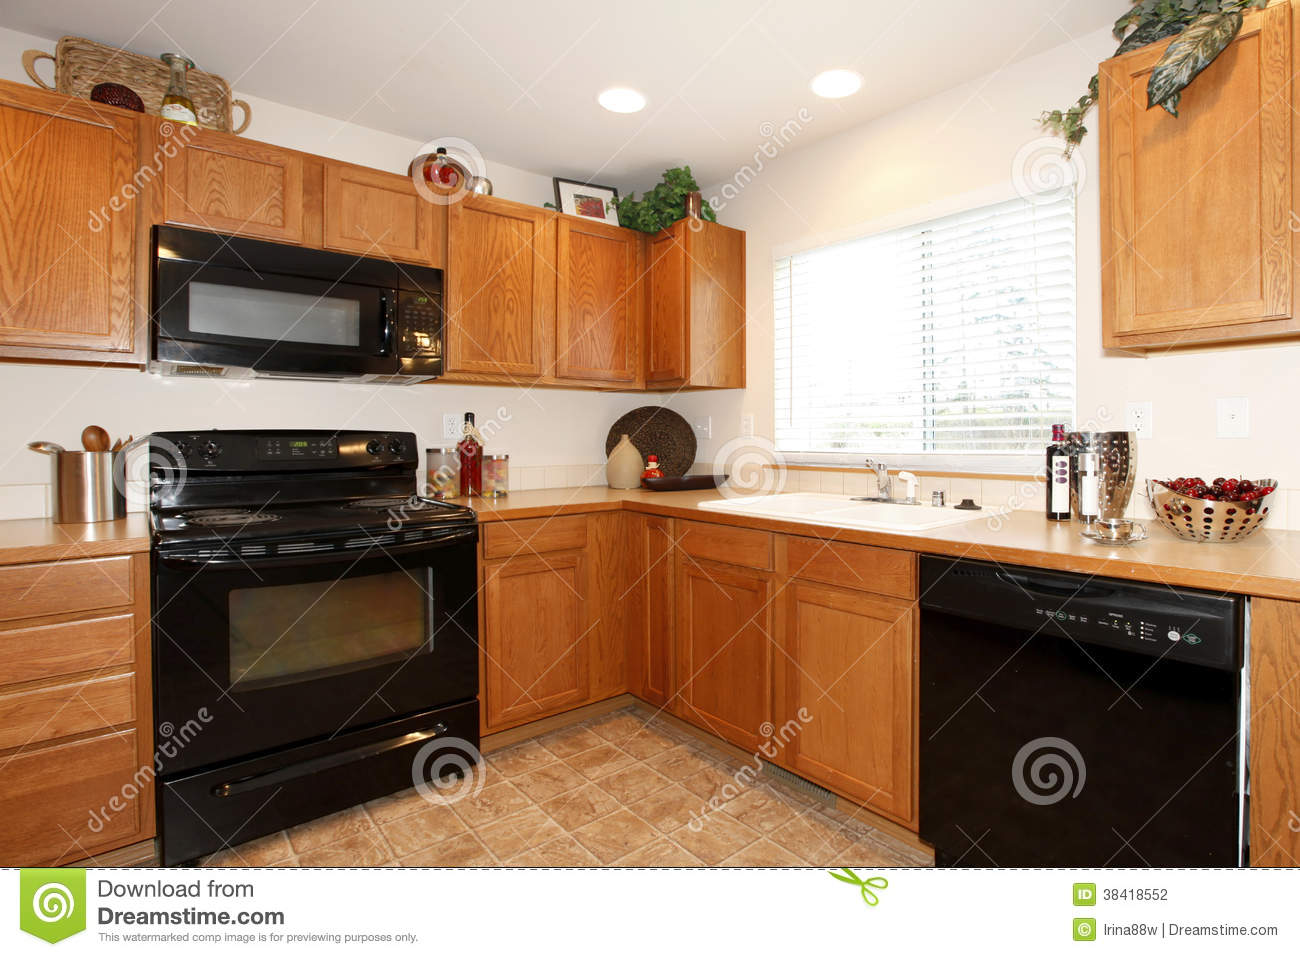 Brown kitchen cabinets with black appliances stock for Brown kitchen cabinets with black appliances